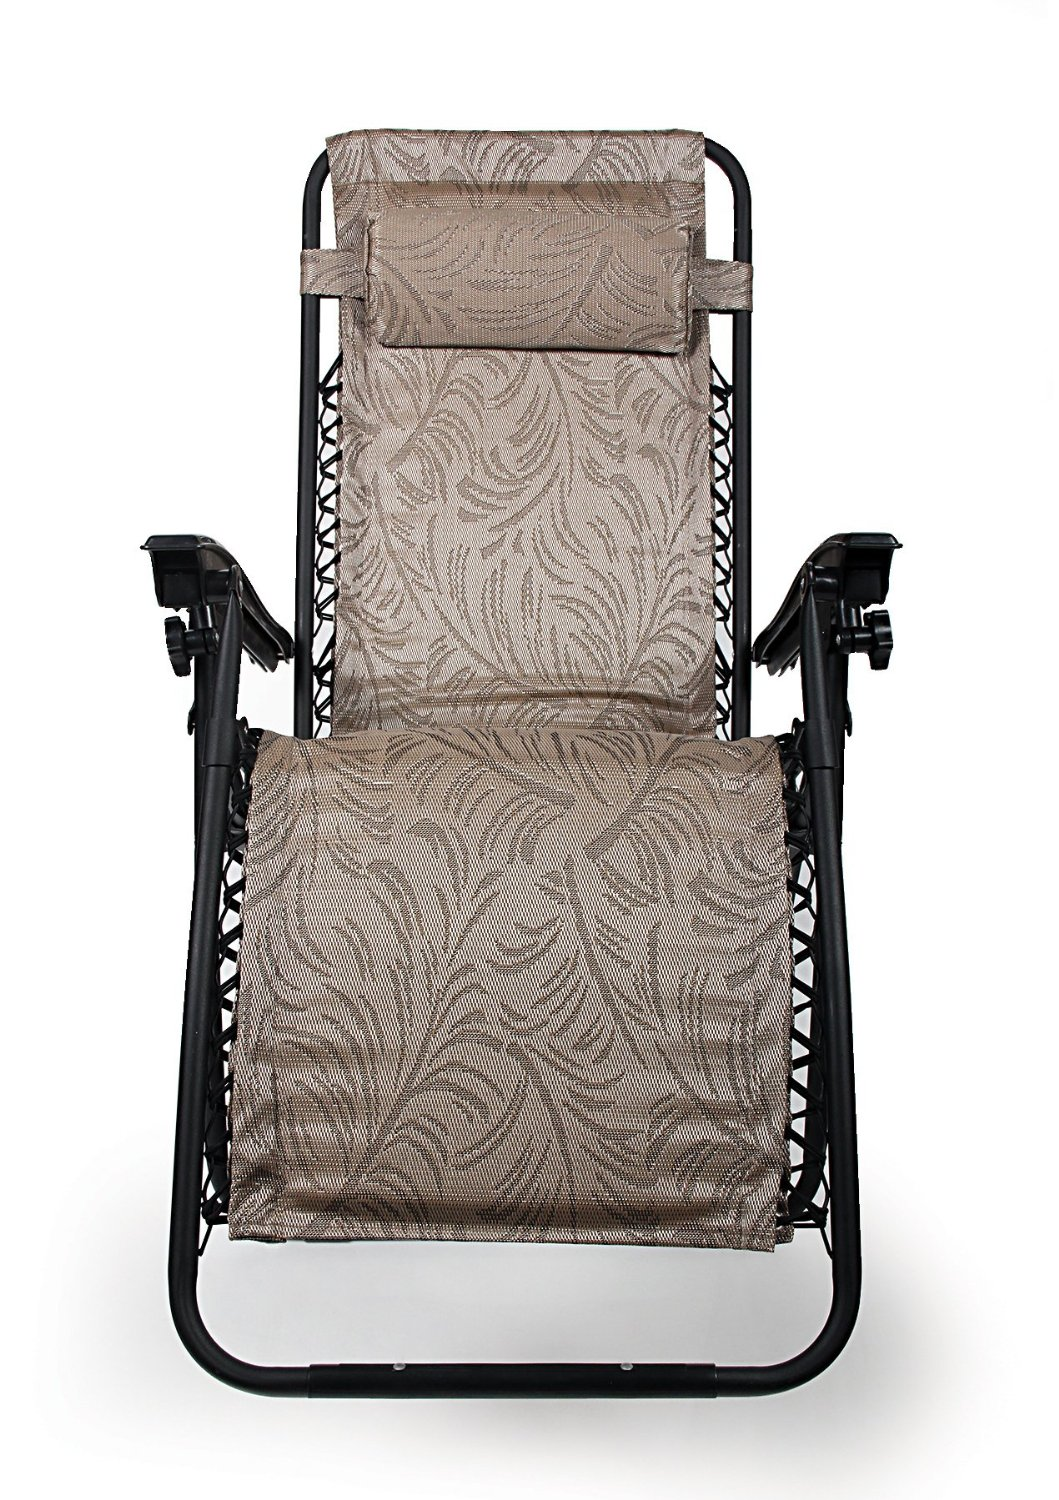 Sport Brella Recliner Chair The Most Comfortable Recliners Best Recliners